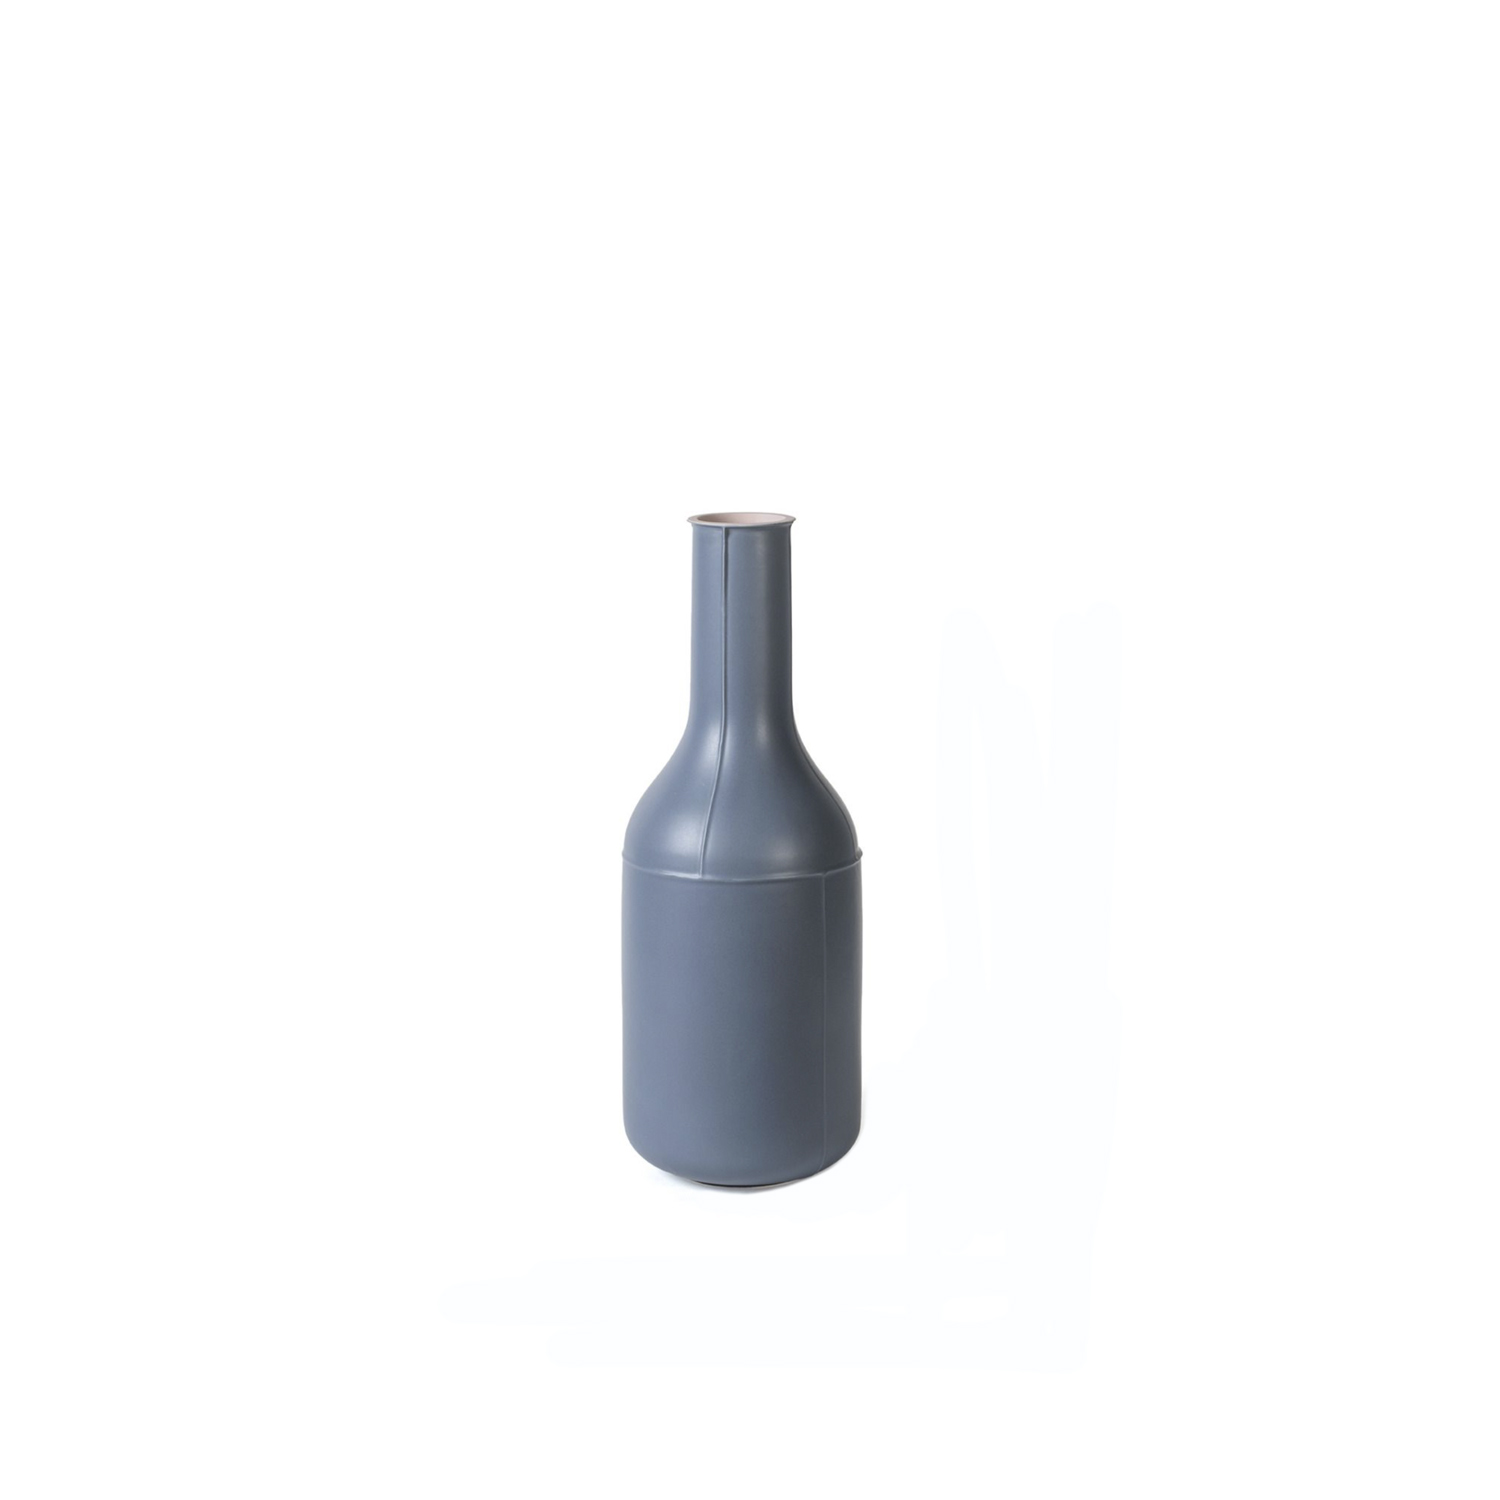 Light Blue Bottle Vase - Bottle vase. Cast in white clay. Two-tone matt glaze, pink on the inside and blue on the outside.